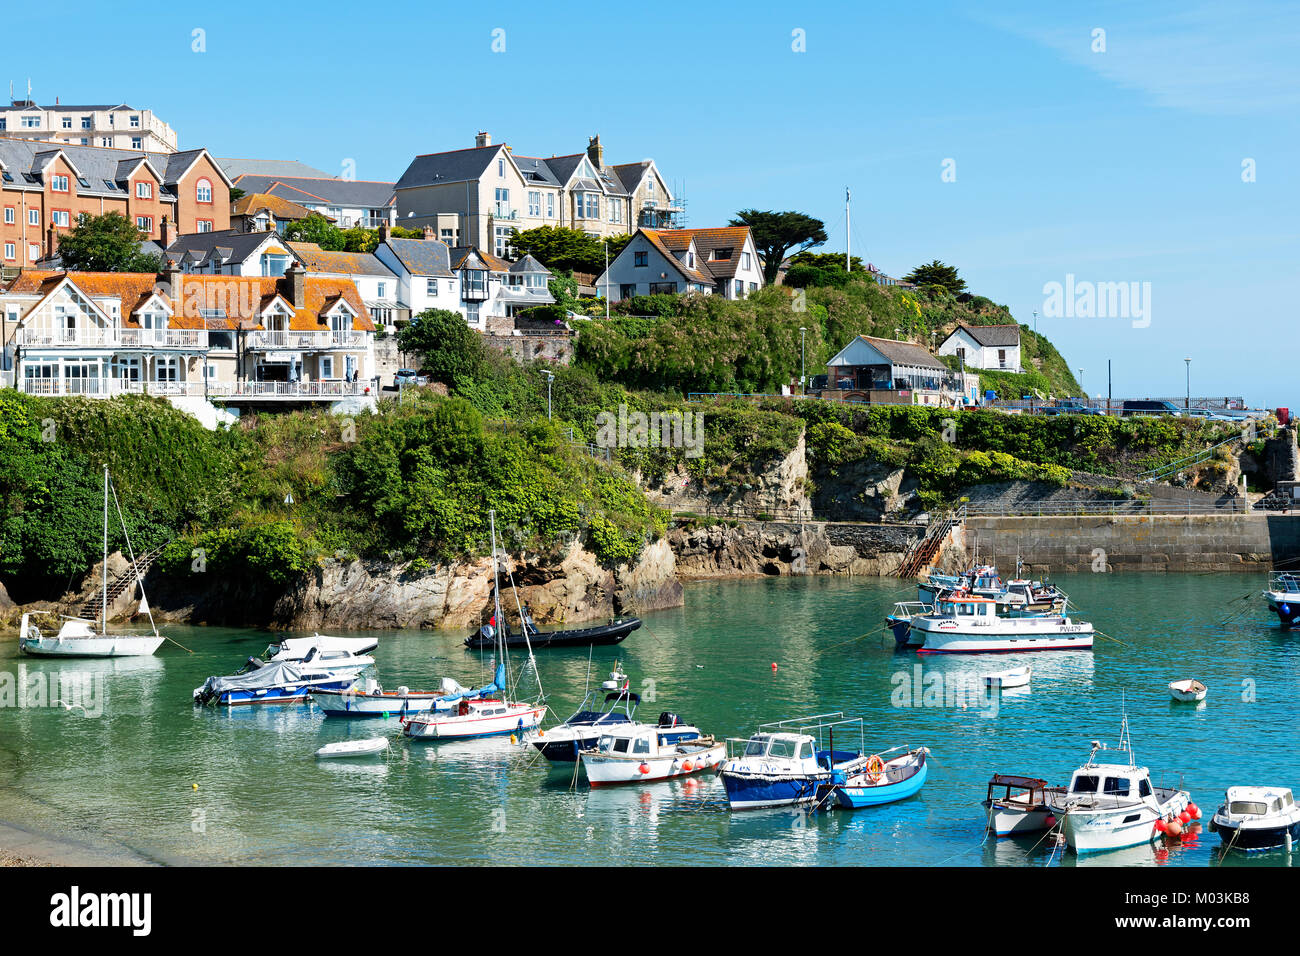 fishing boats in the harbour at newquay, cornwall, england, britain, uk. - Stock Image